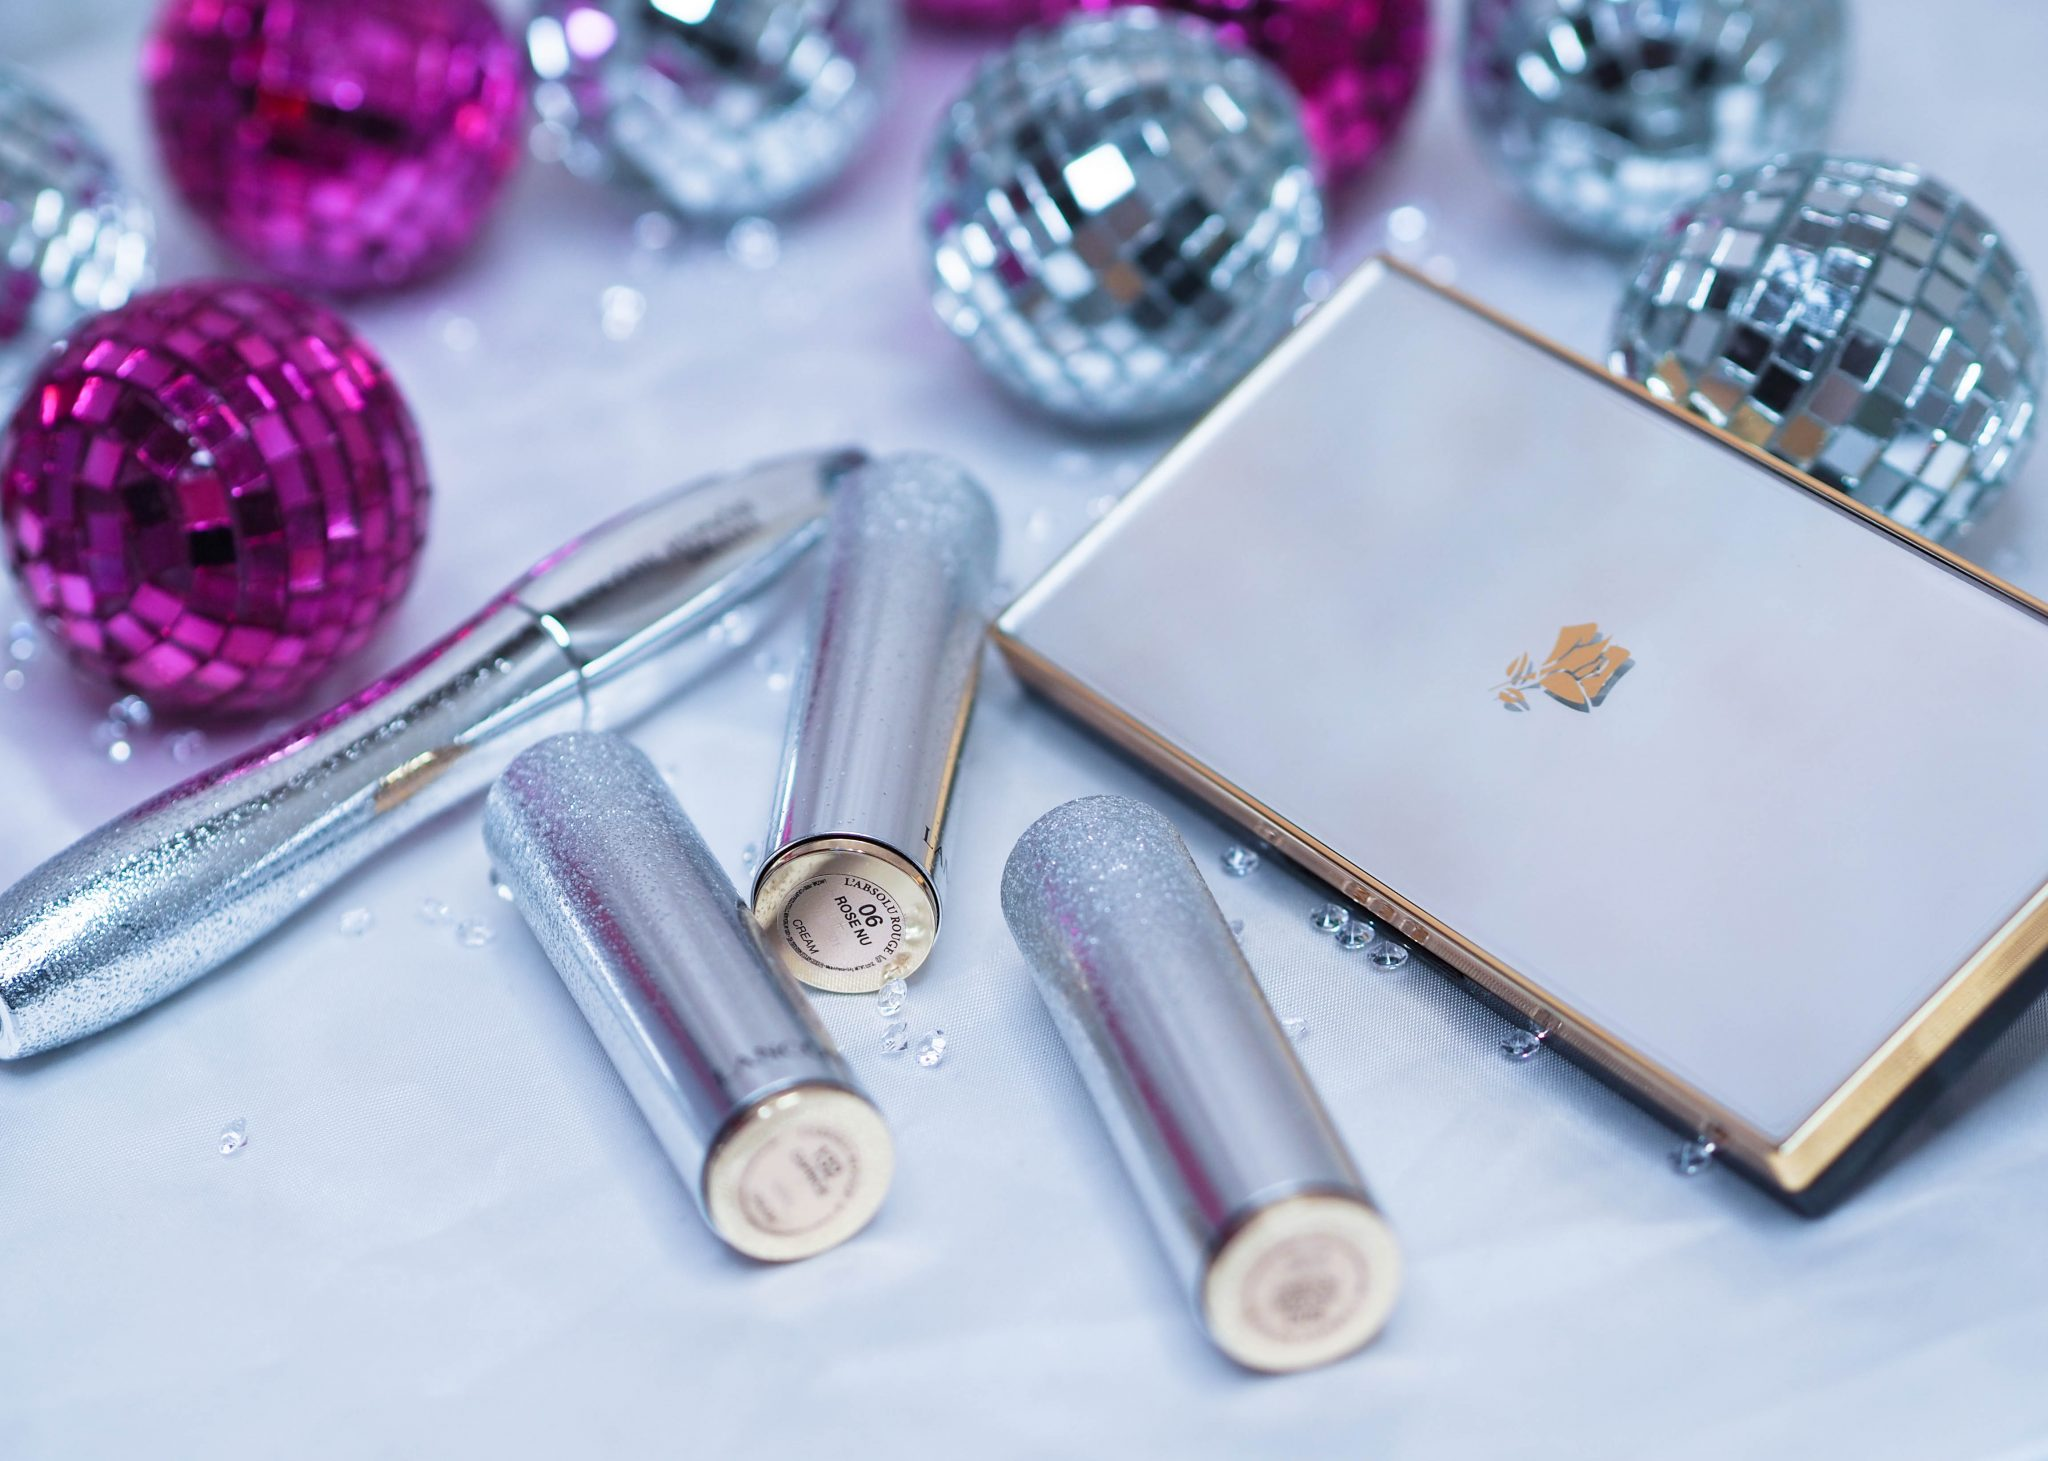 Lancome Christmas Collection 2019